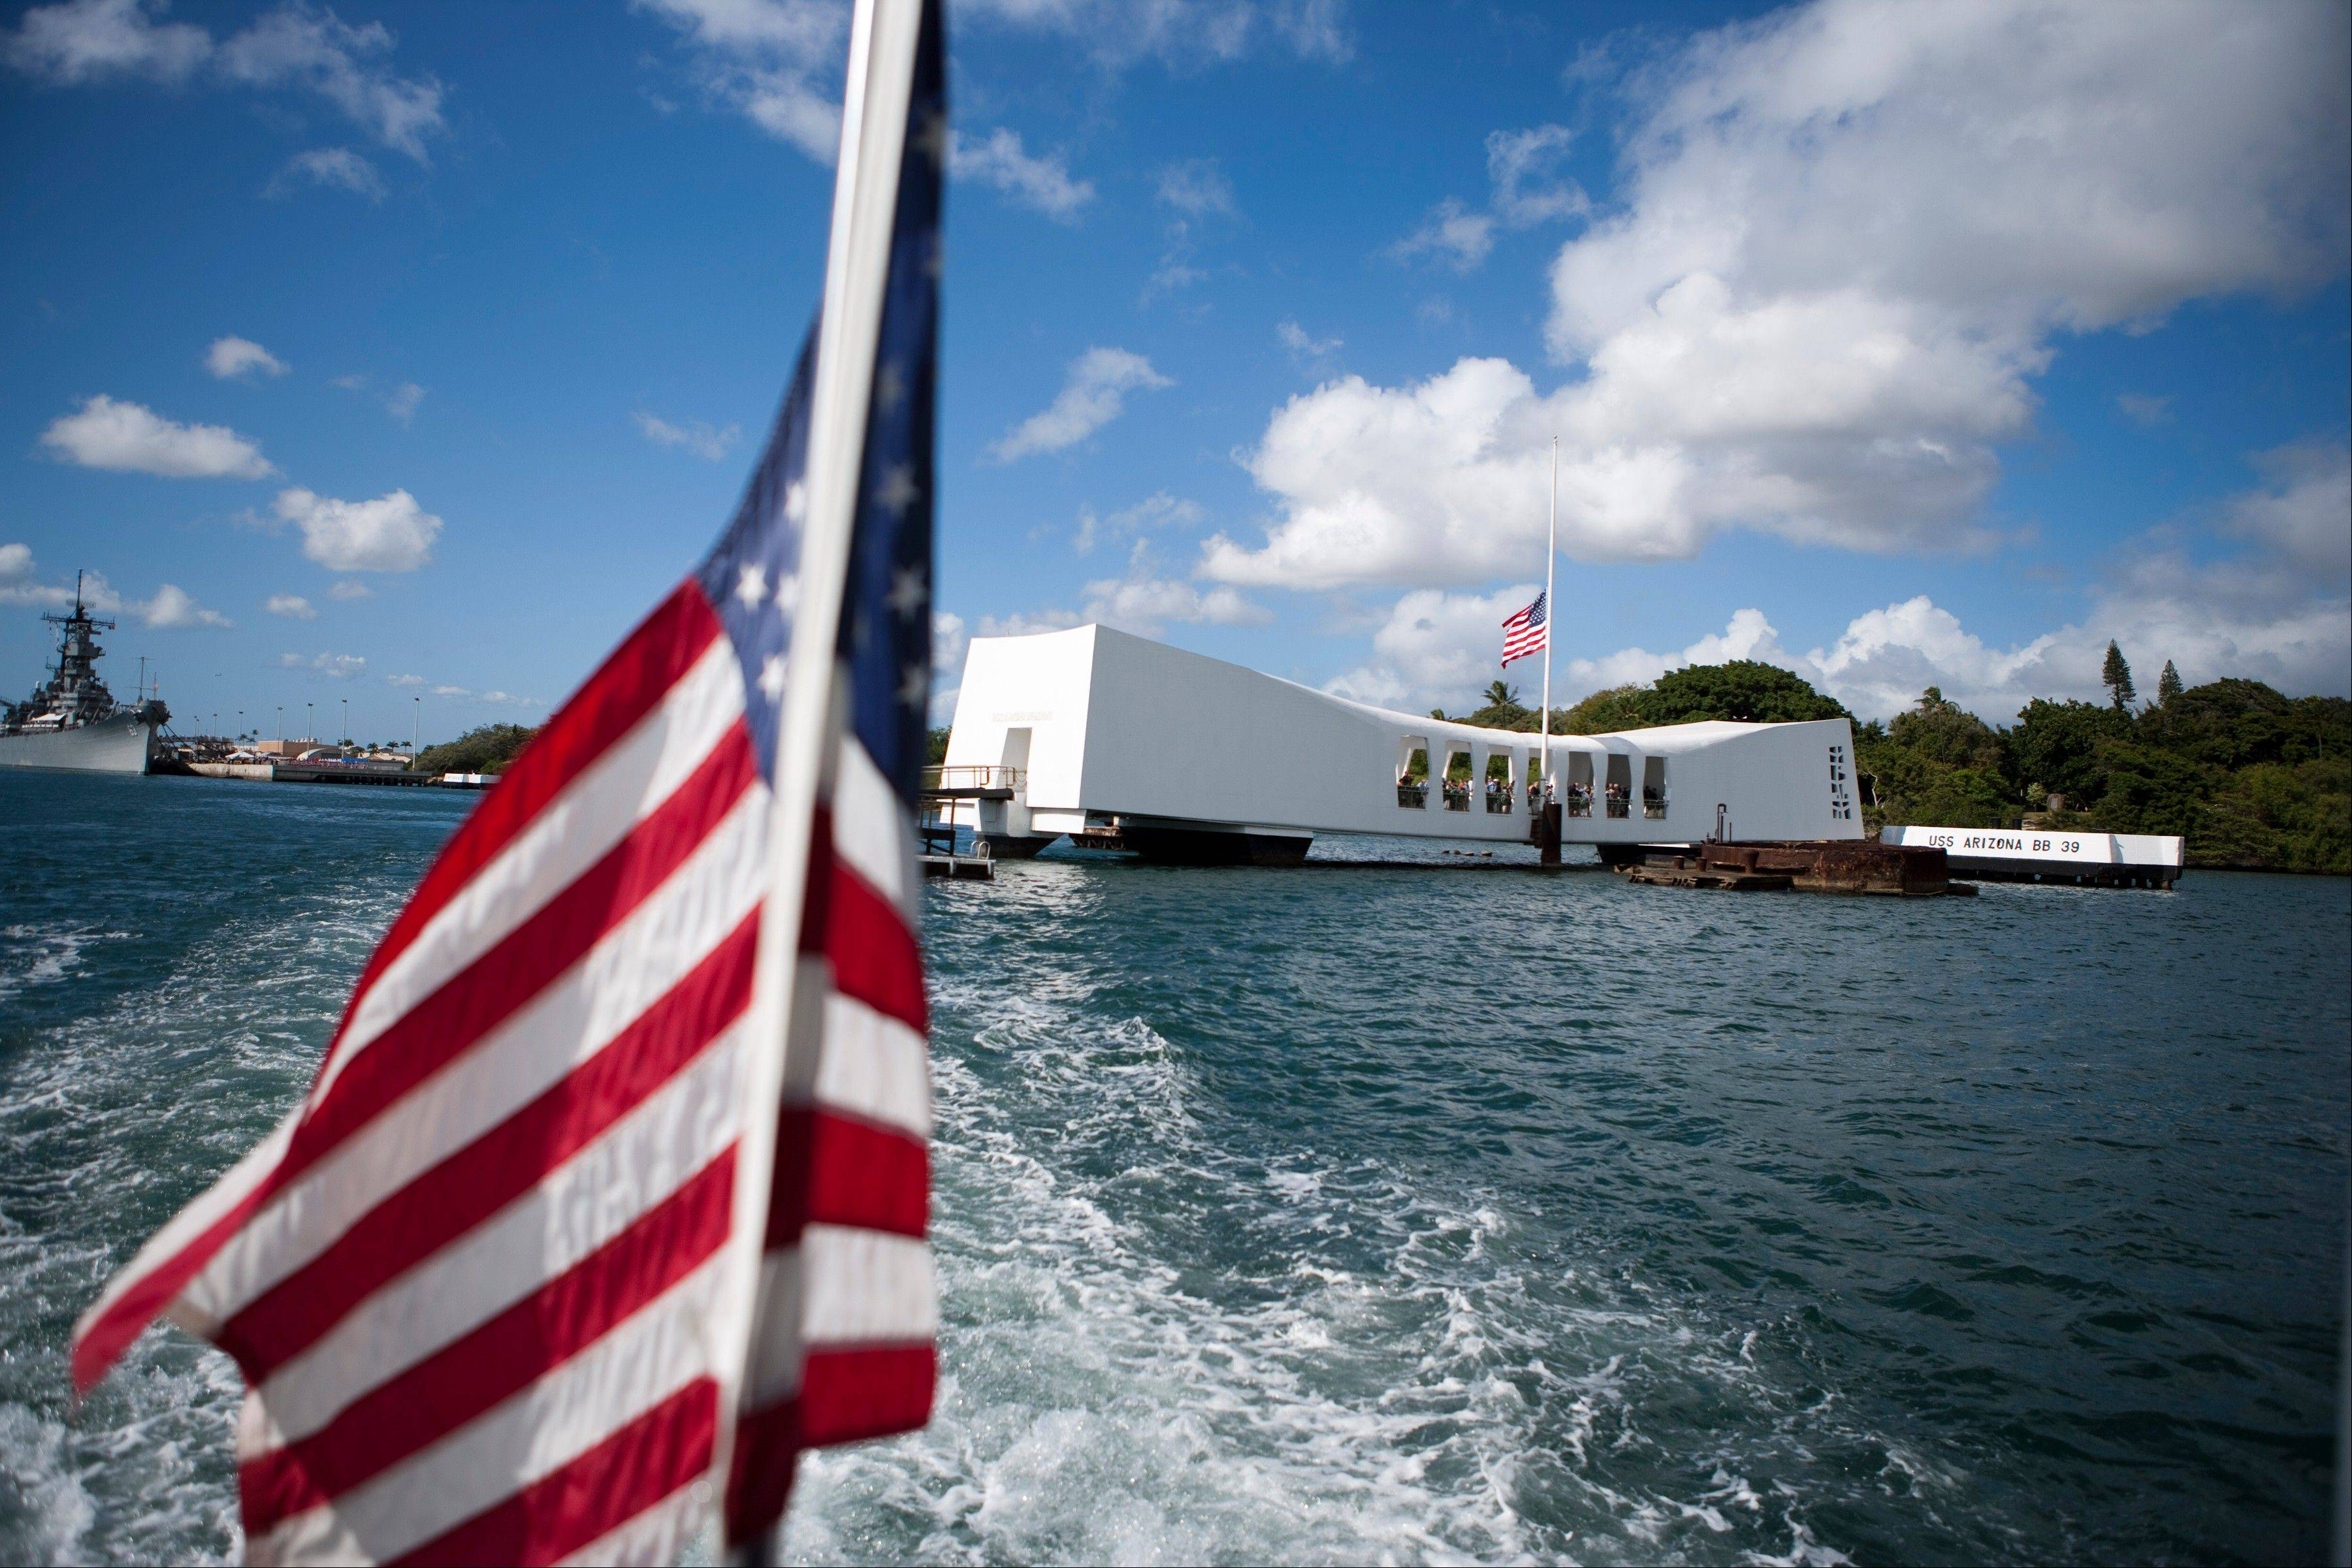 The USS Arizona Memorial in Pearl Harbor is actually a grave, a resting place for crew members who died in the Pearl Harbor attack of Dec. 7, 1941.